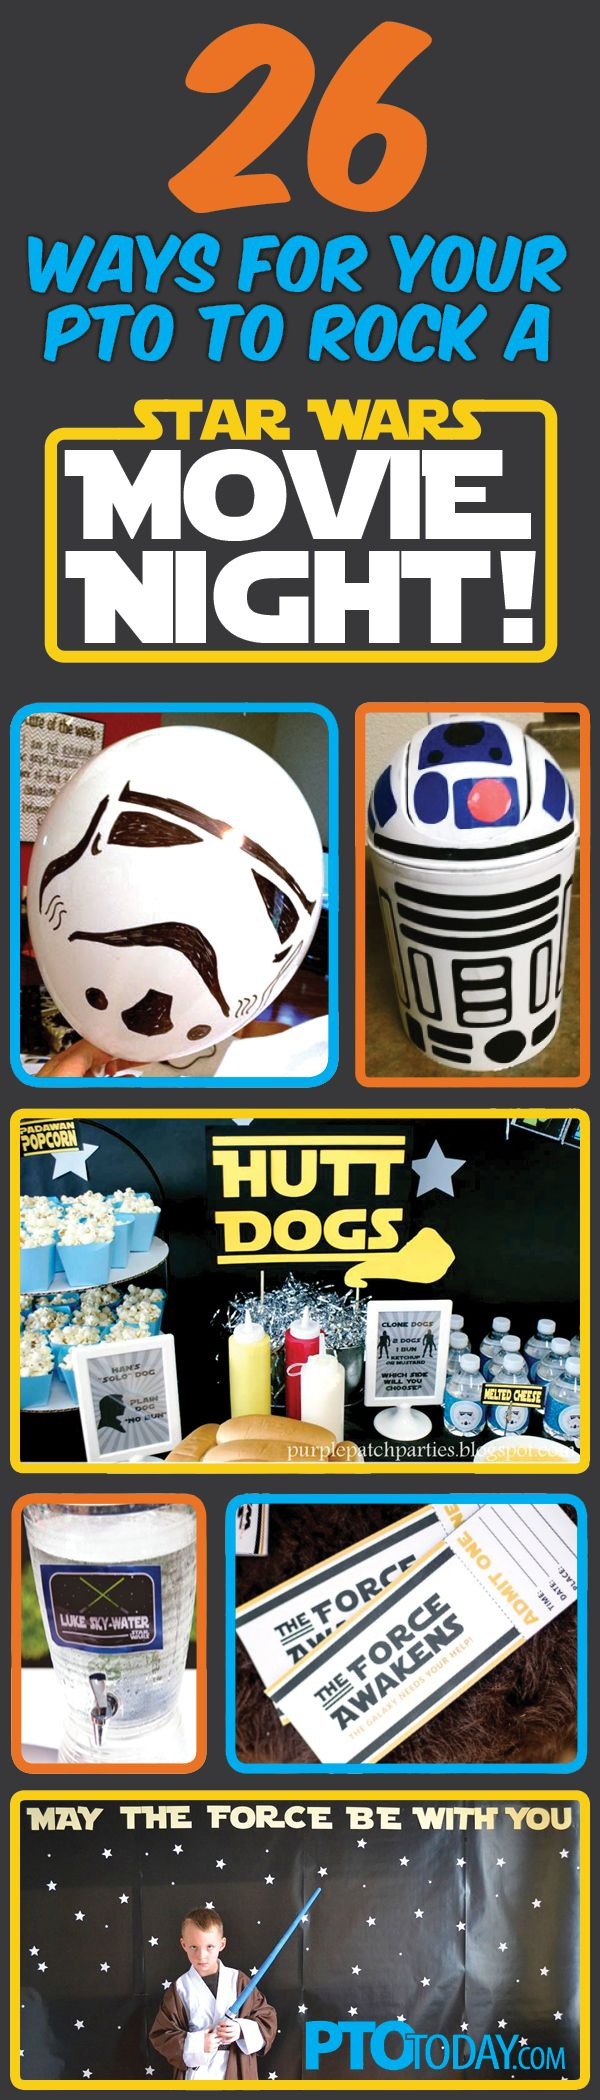 Get all the ideas you need for a fun Star Wars Family Movie Night at your school! #maythefourthbewithyou